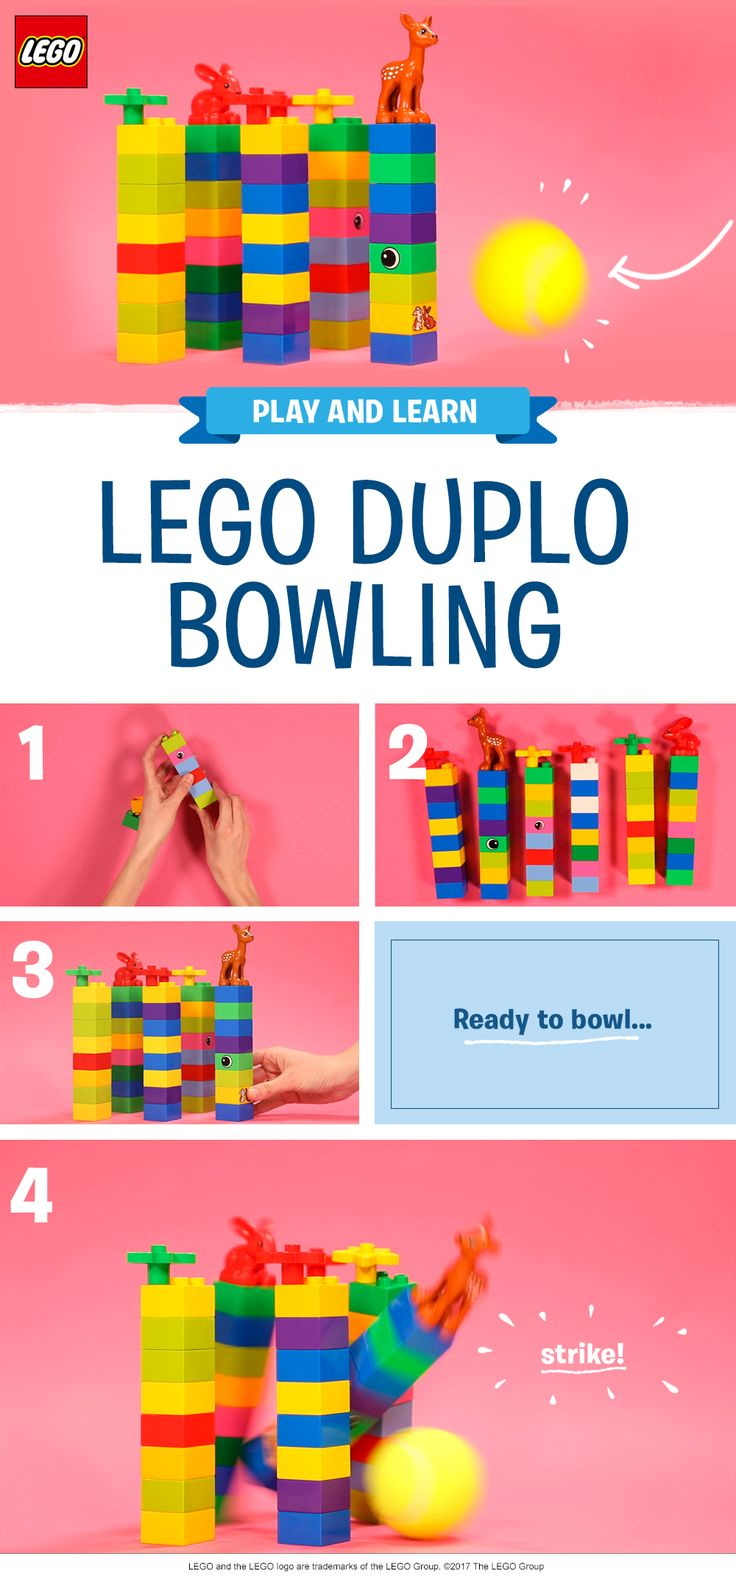 187 best LEGO DUPLO images on Pinterest Lego creations